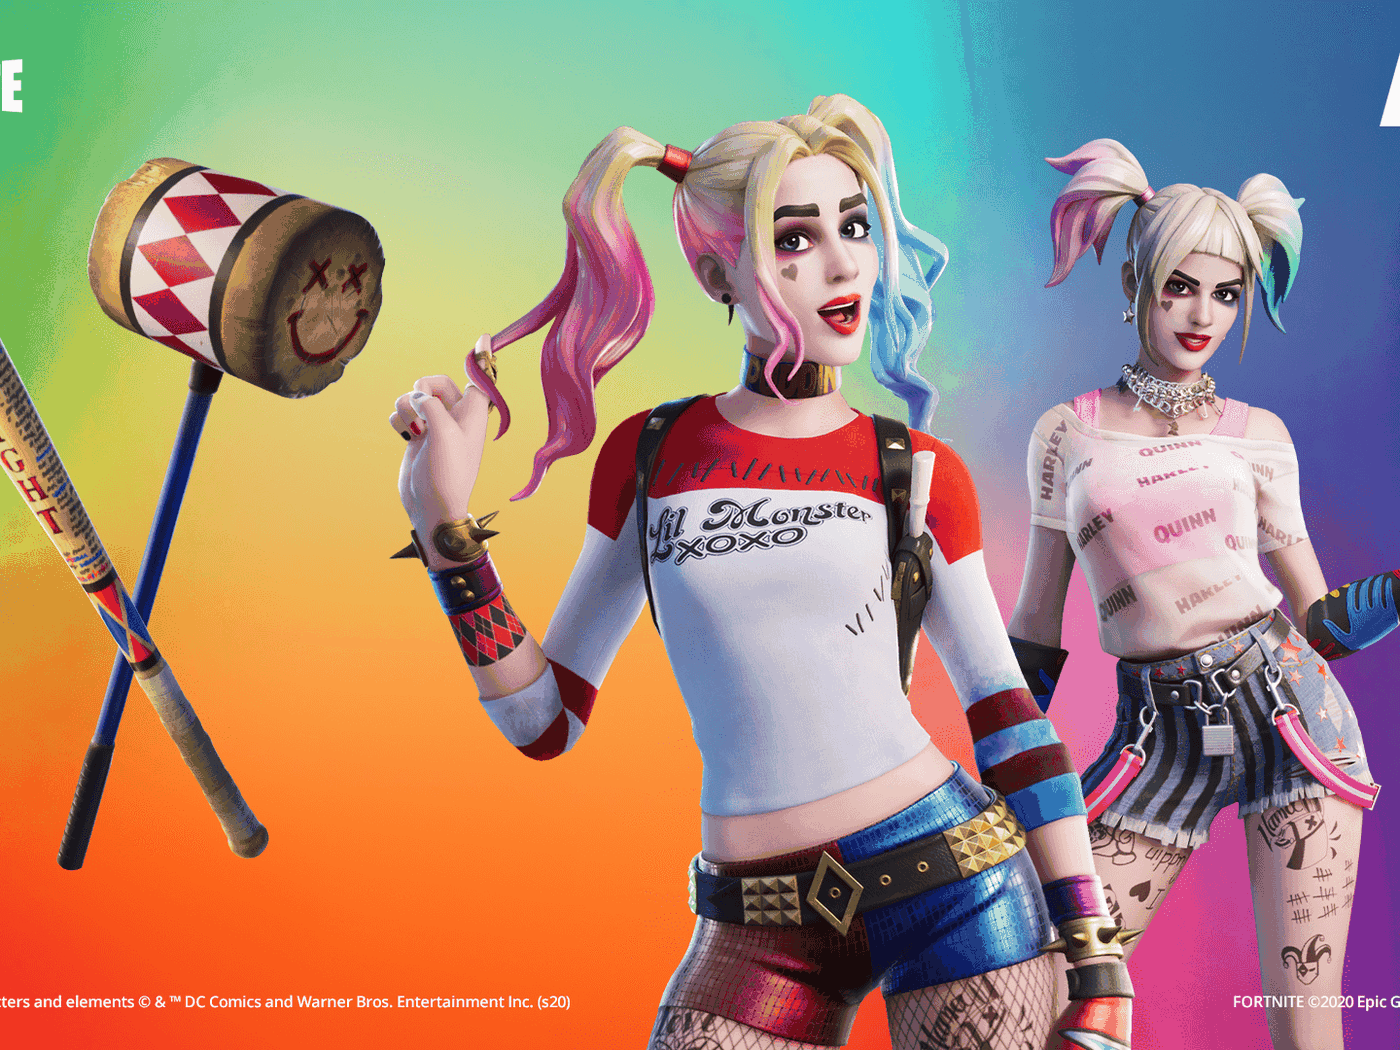 Fortnite Adds A Harley Quinn Skin To Celebrate The Release Of Birds Of Prey The Verge